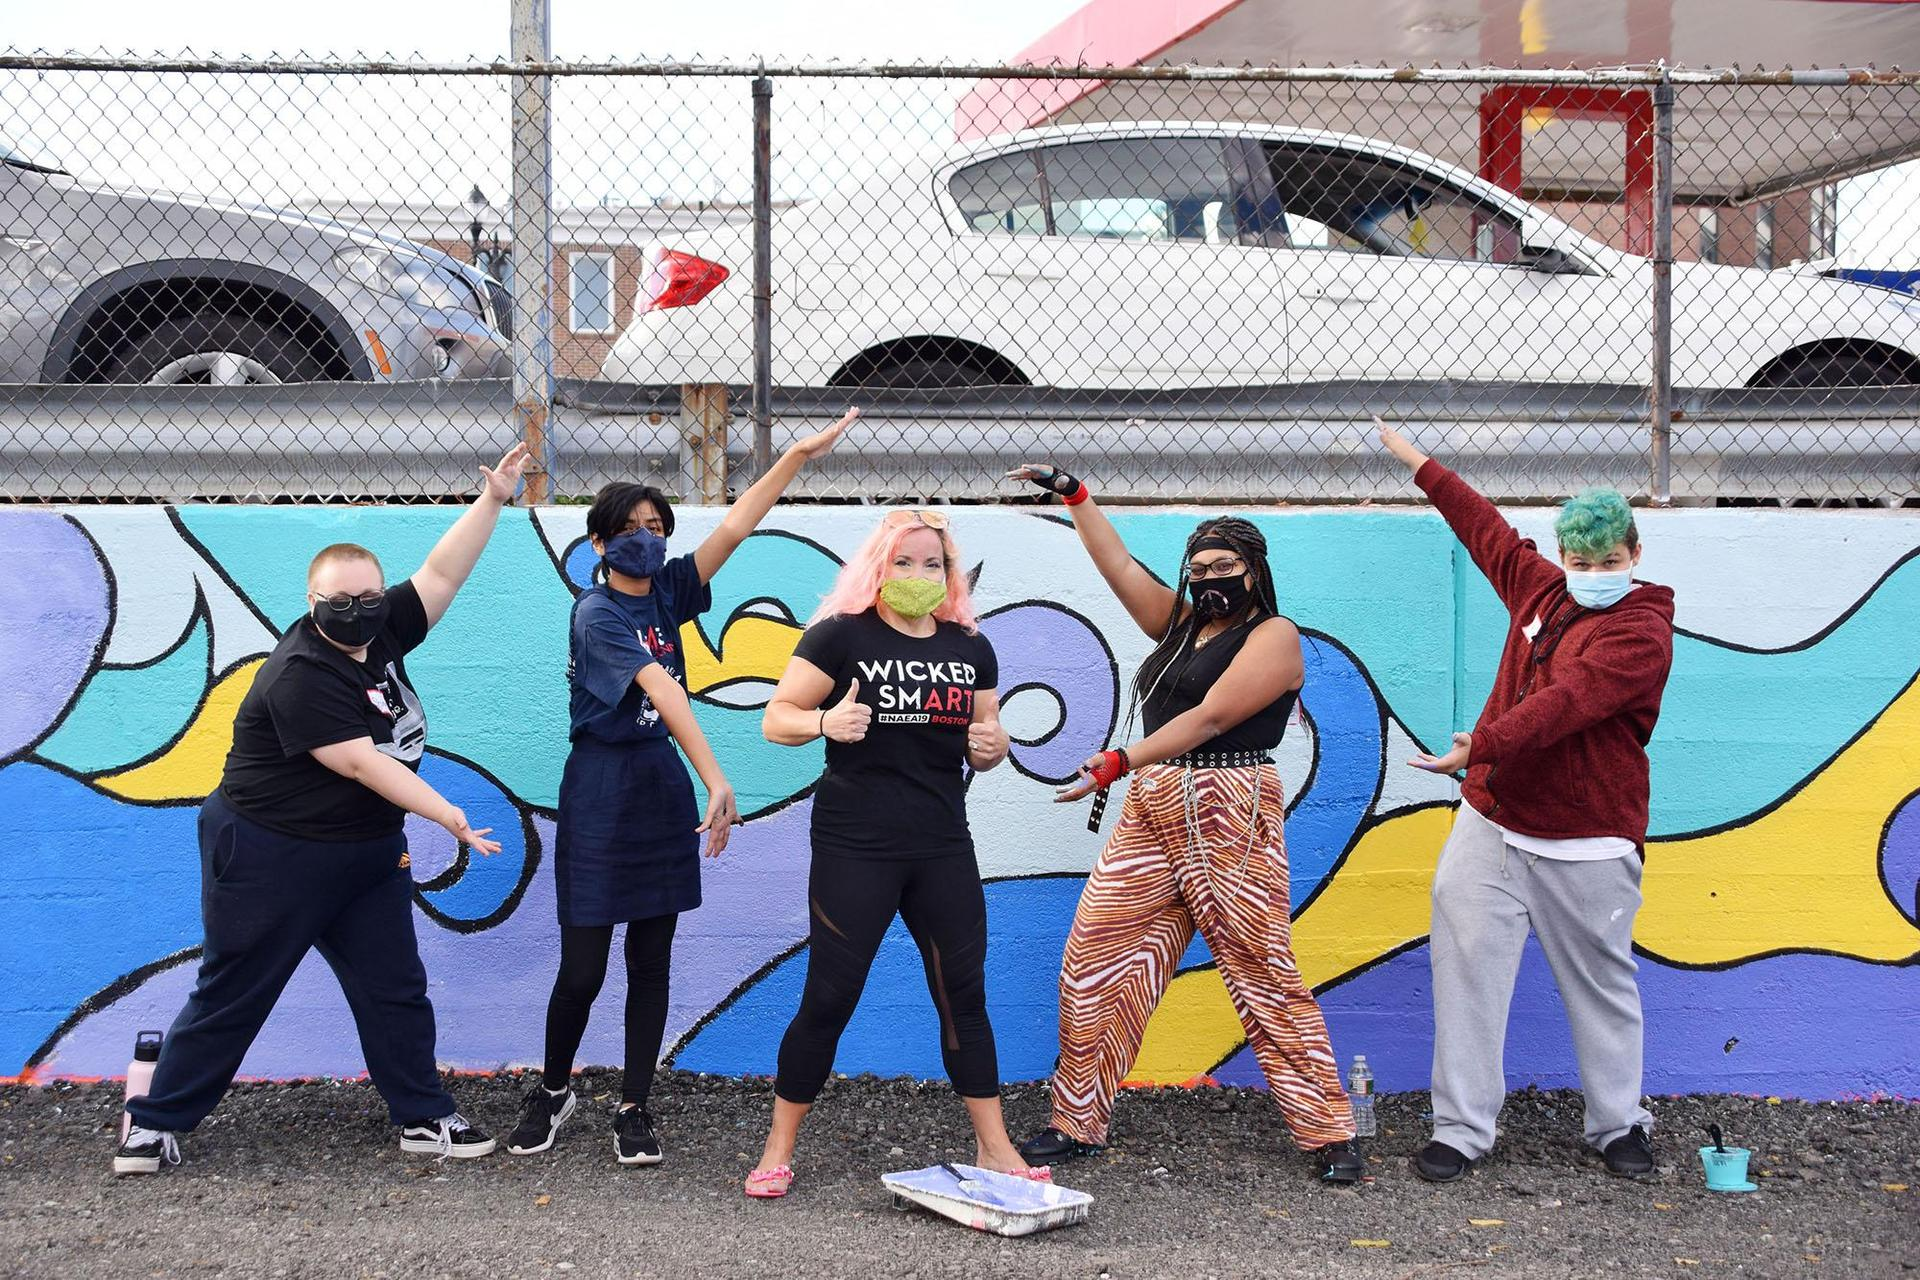 Five people, a teacher and four students, pose in front of the mural